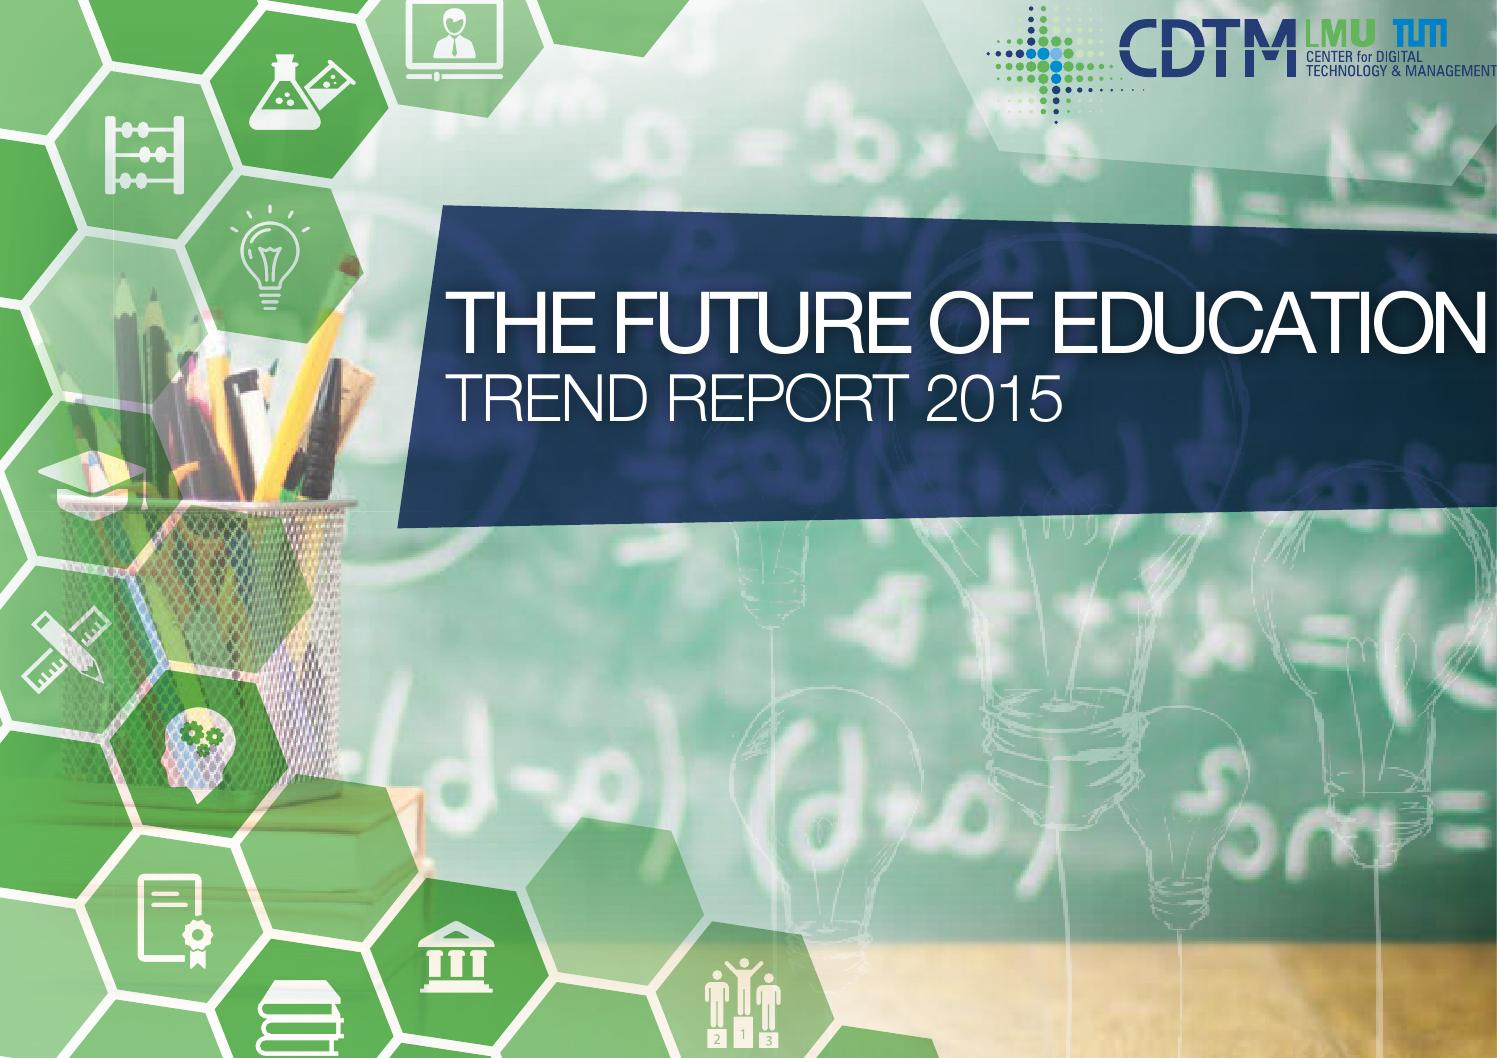 The Future of Education  Trend Report 2015 by Center for